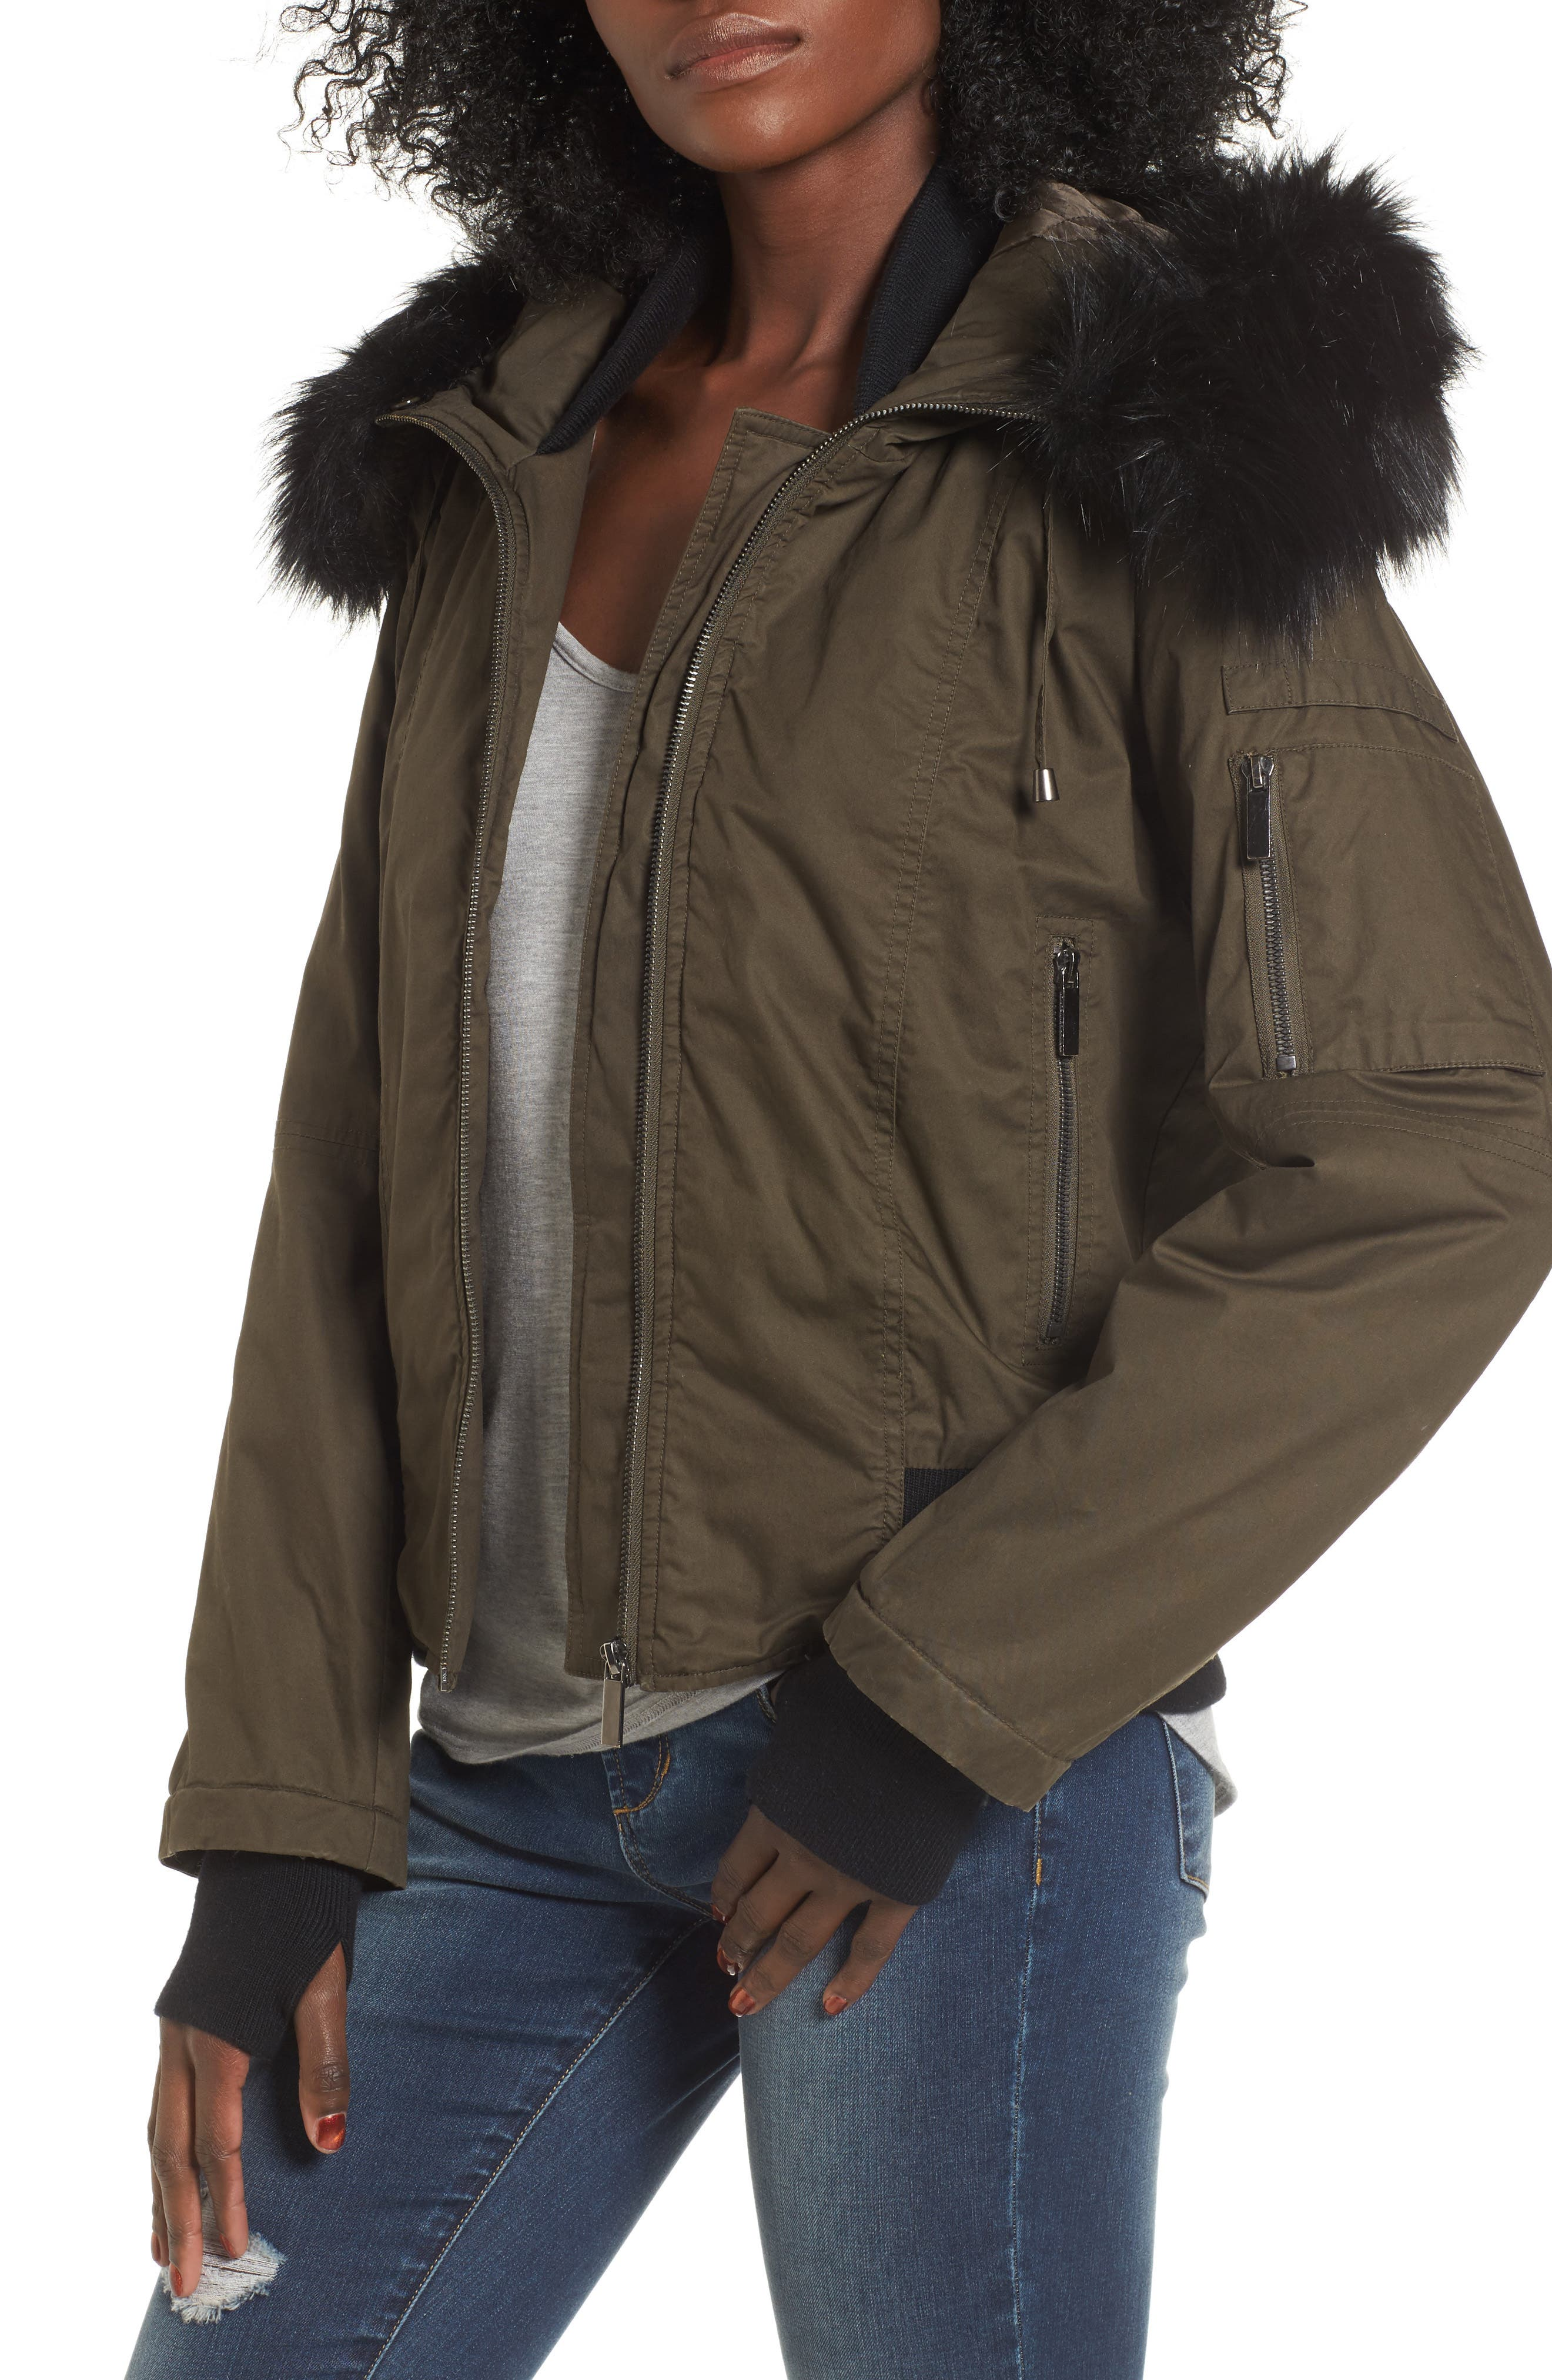 Main Image - French Connection Faux Fur Trim Wax Cotton Bomber Jacket